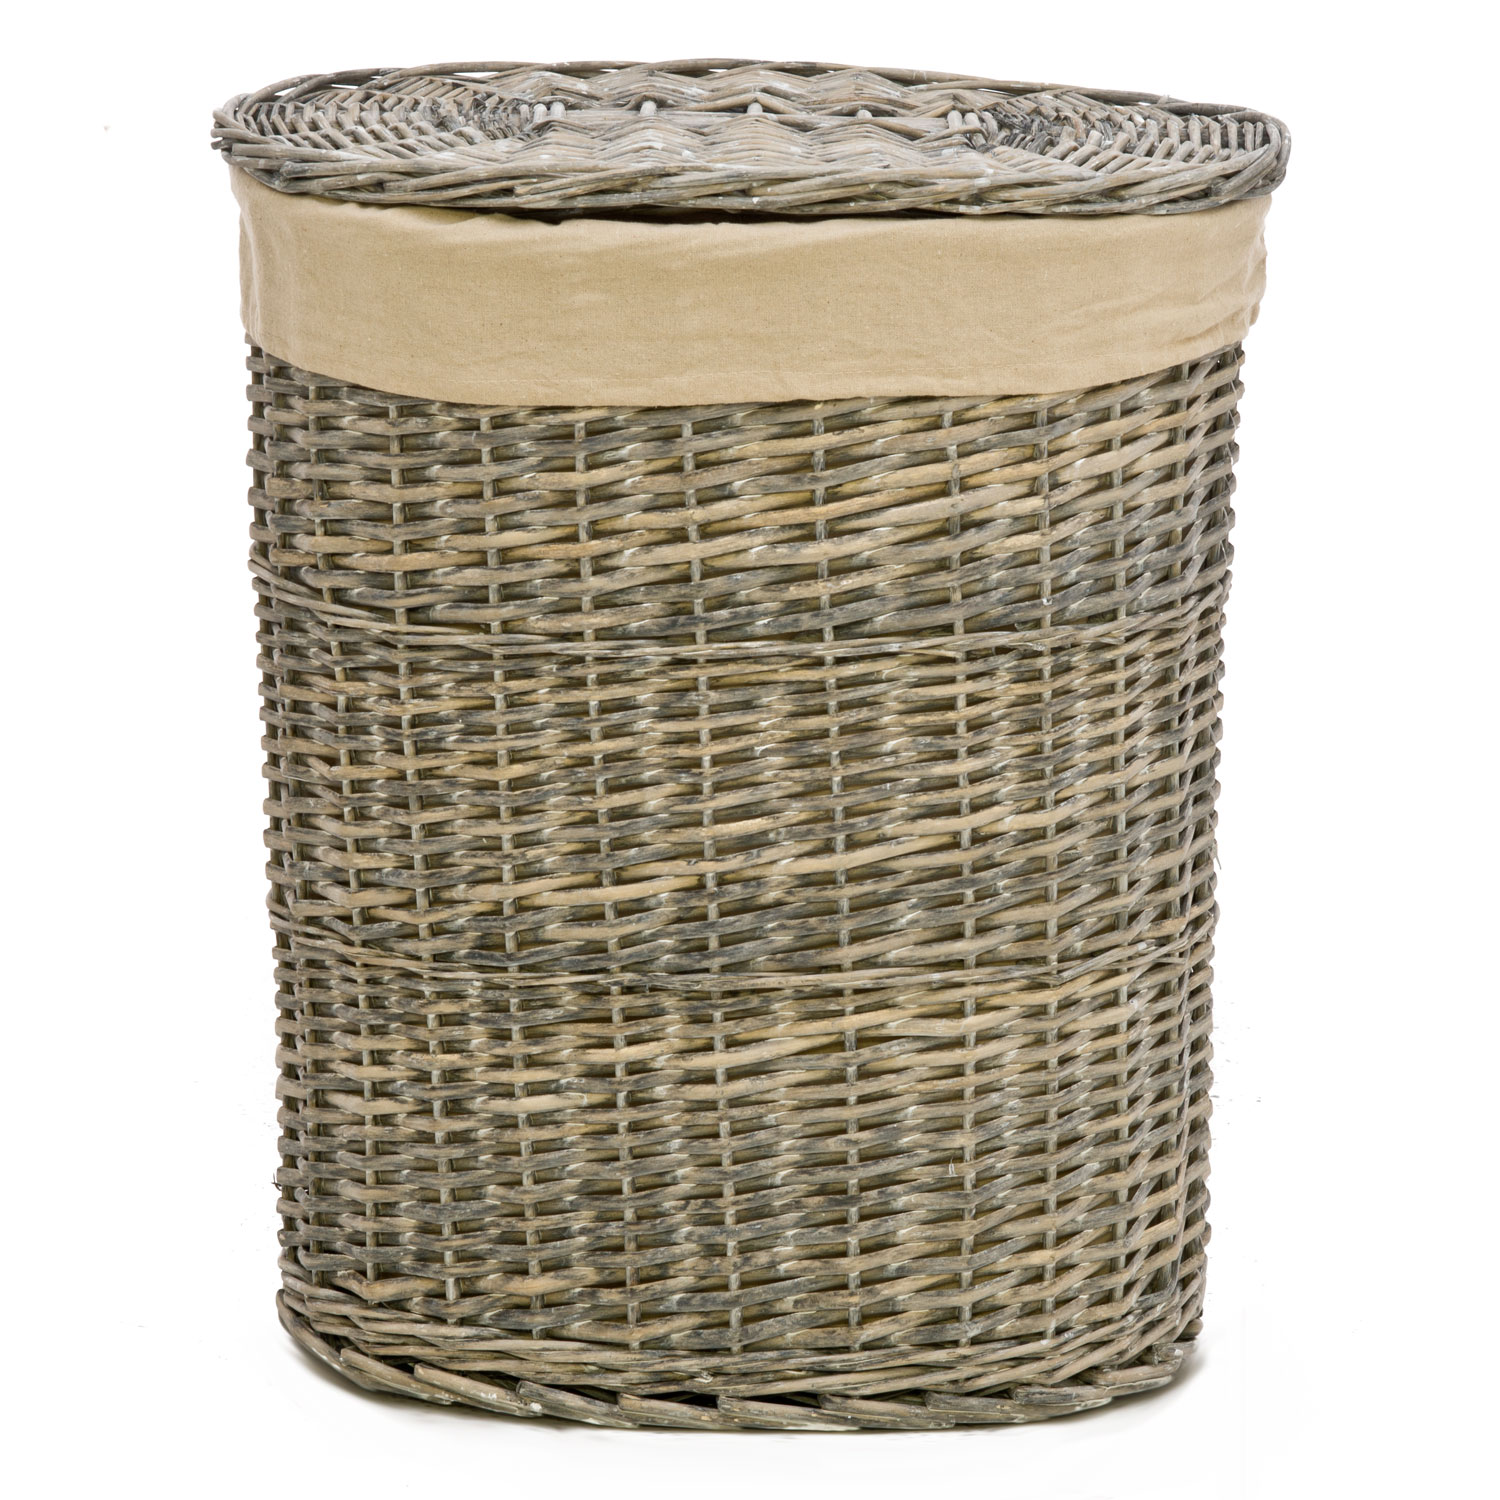 Closed Laundry Basket Willow Laundry Bin Natural